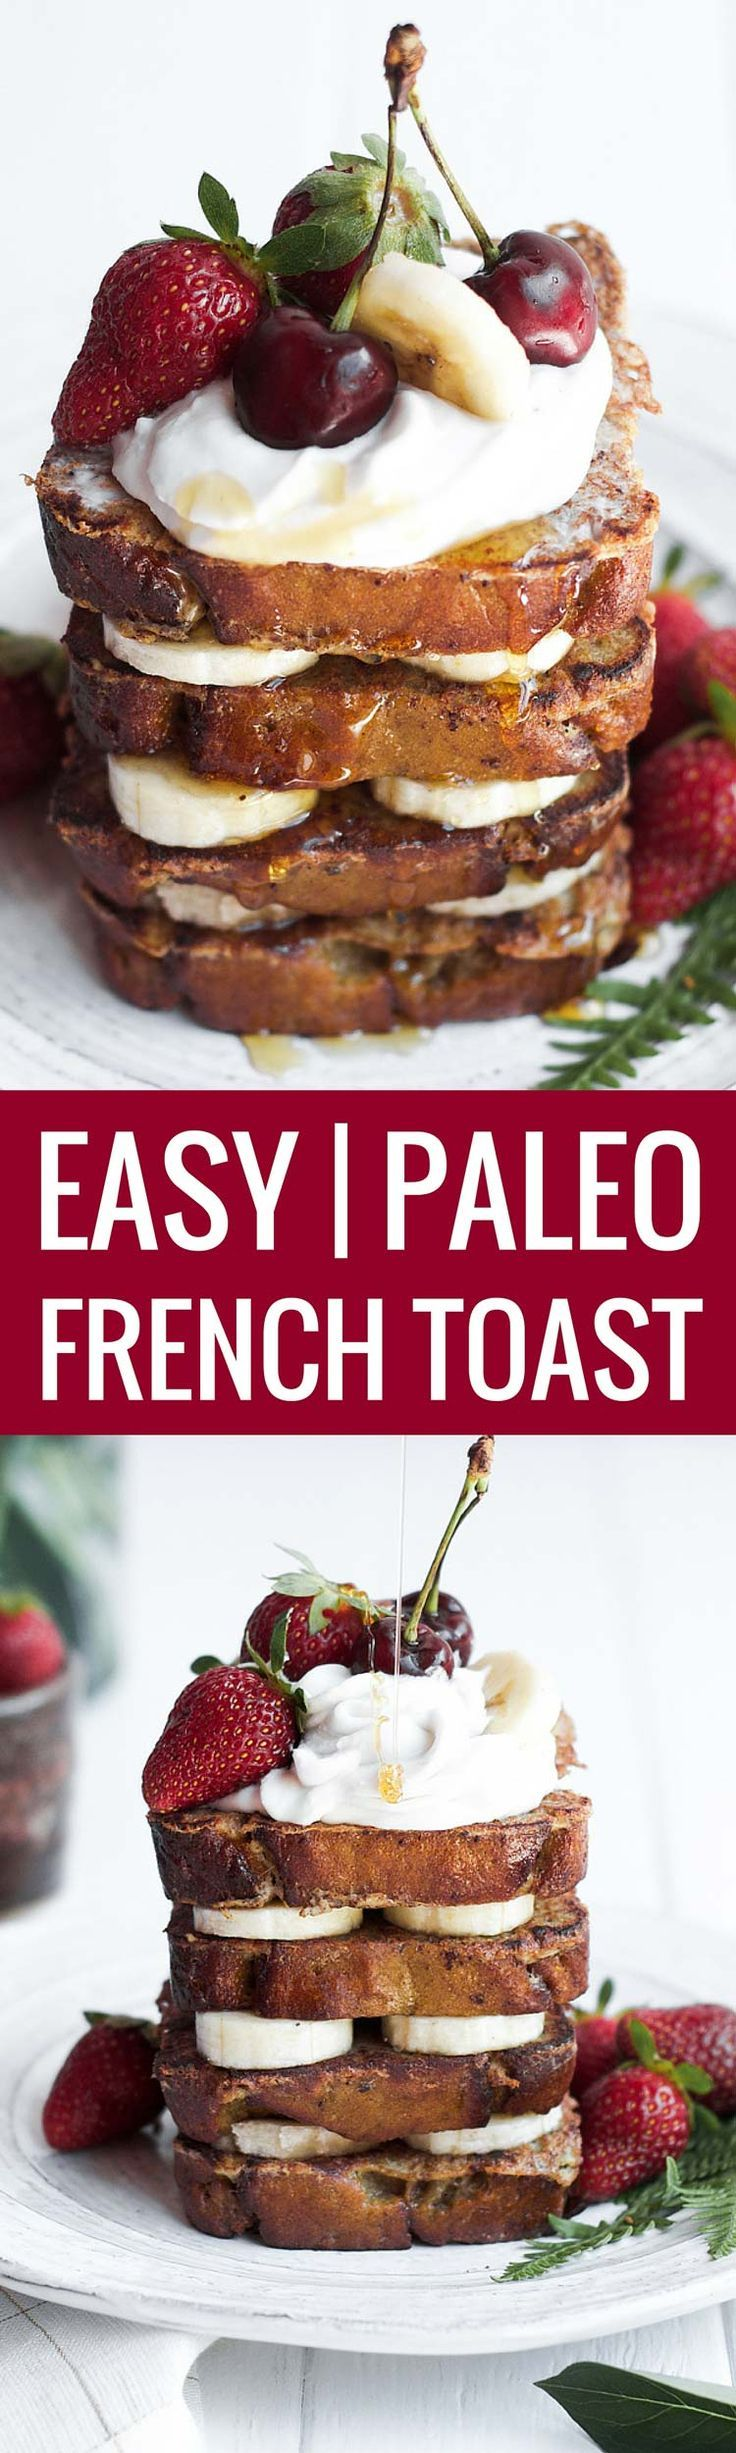 Best 25 healthy french toast ideas on pinterest baked french paleo banana bread french toast ccuart Images